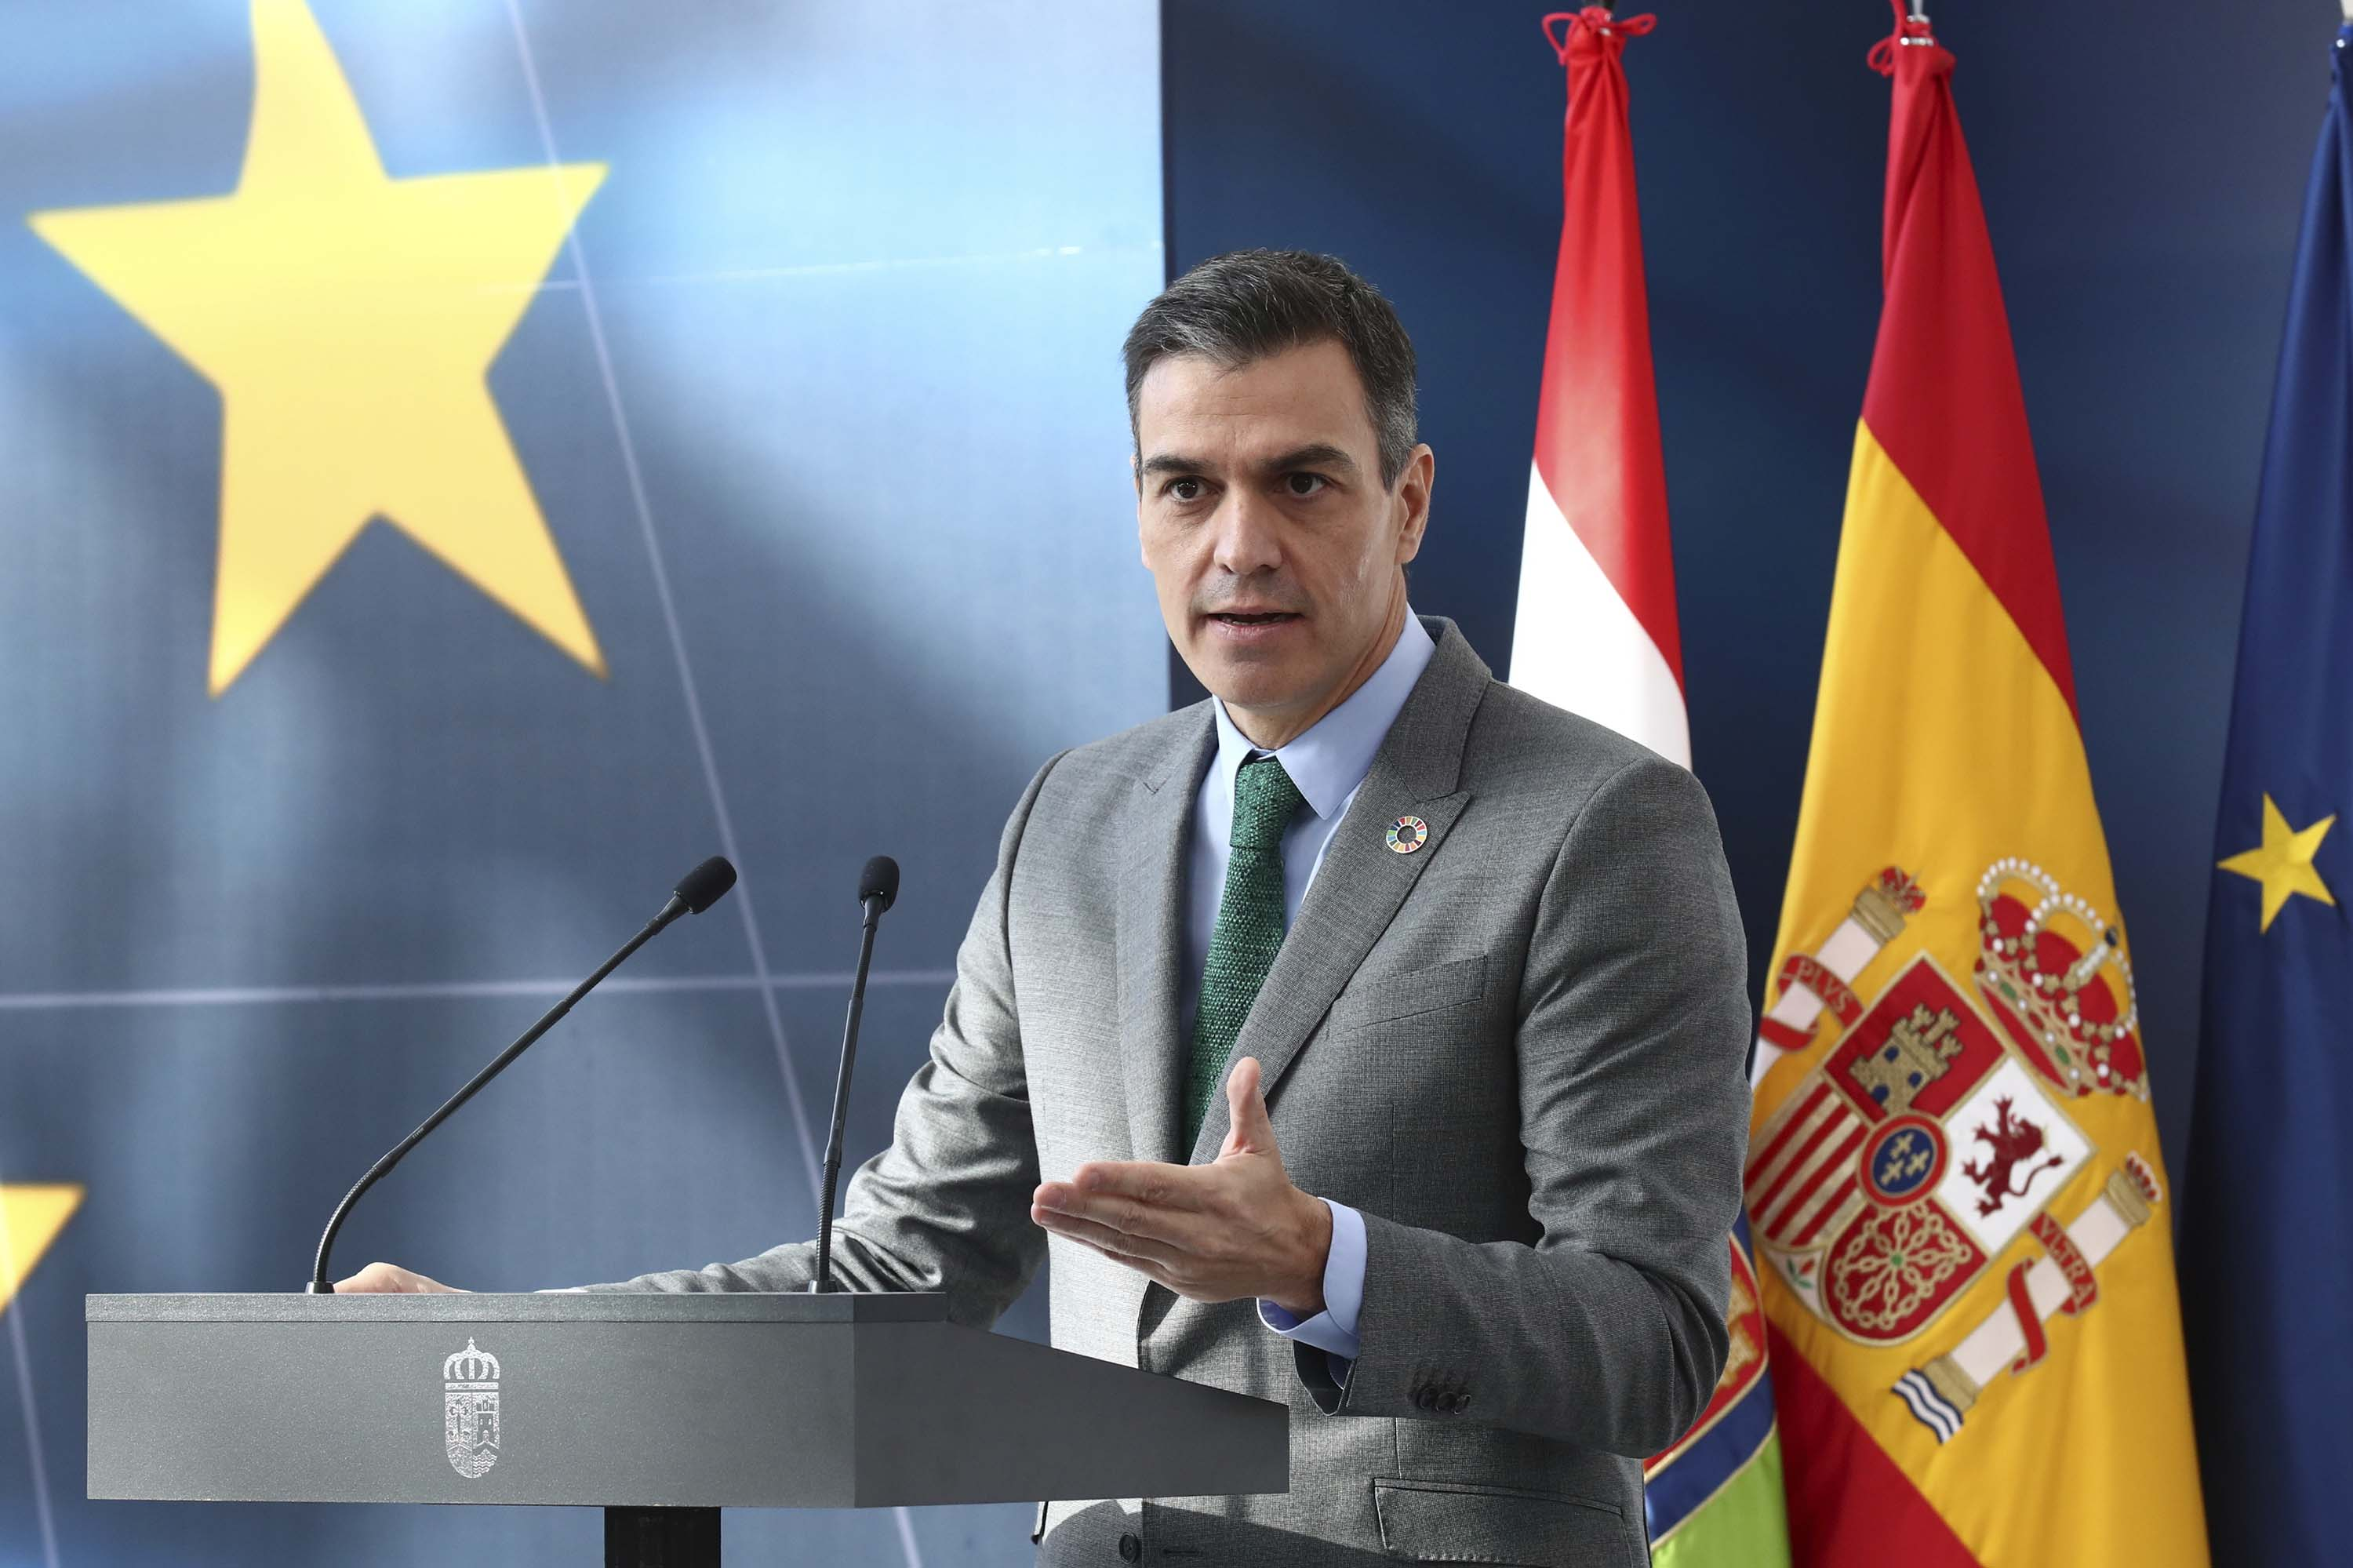 Spanish Prime Minister Pedro Sanchez speaks in Agoncillo, Spain, on Friday, November 20.